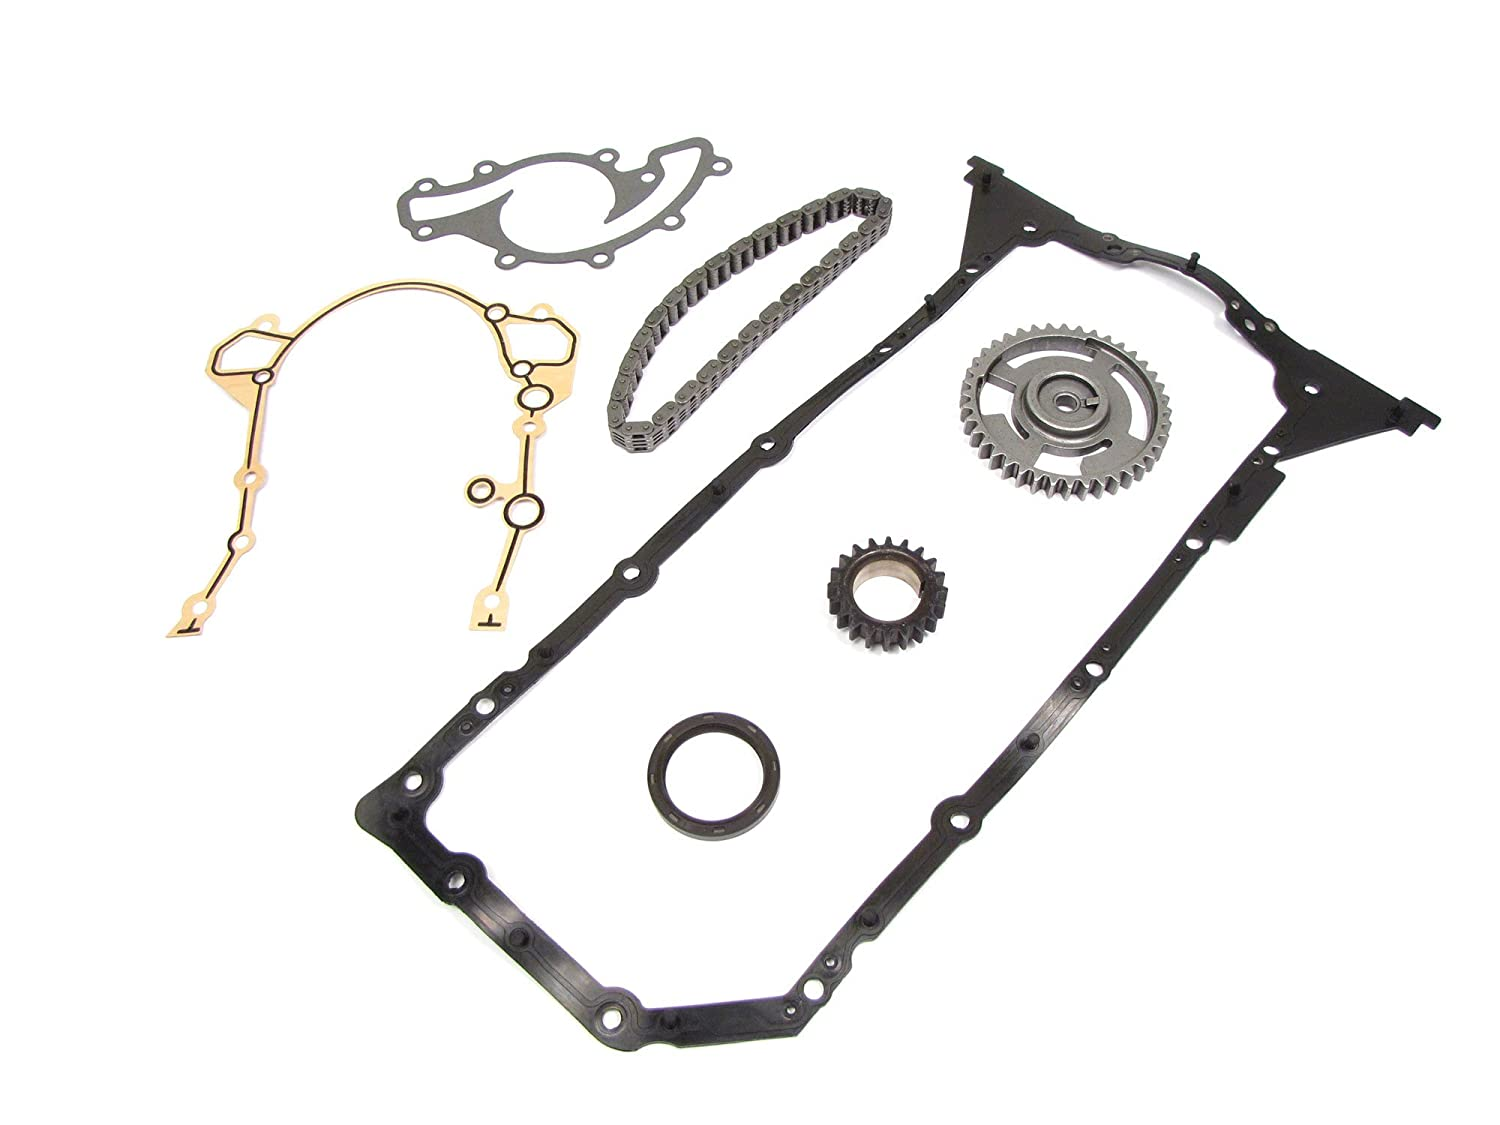 Land Rover Timing Chain Kit ERC7929 for Discovery 2 and Range Rover P38